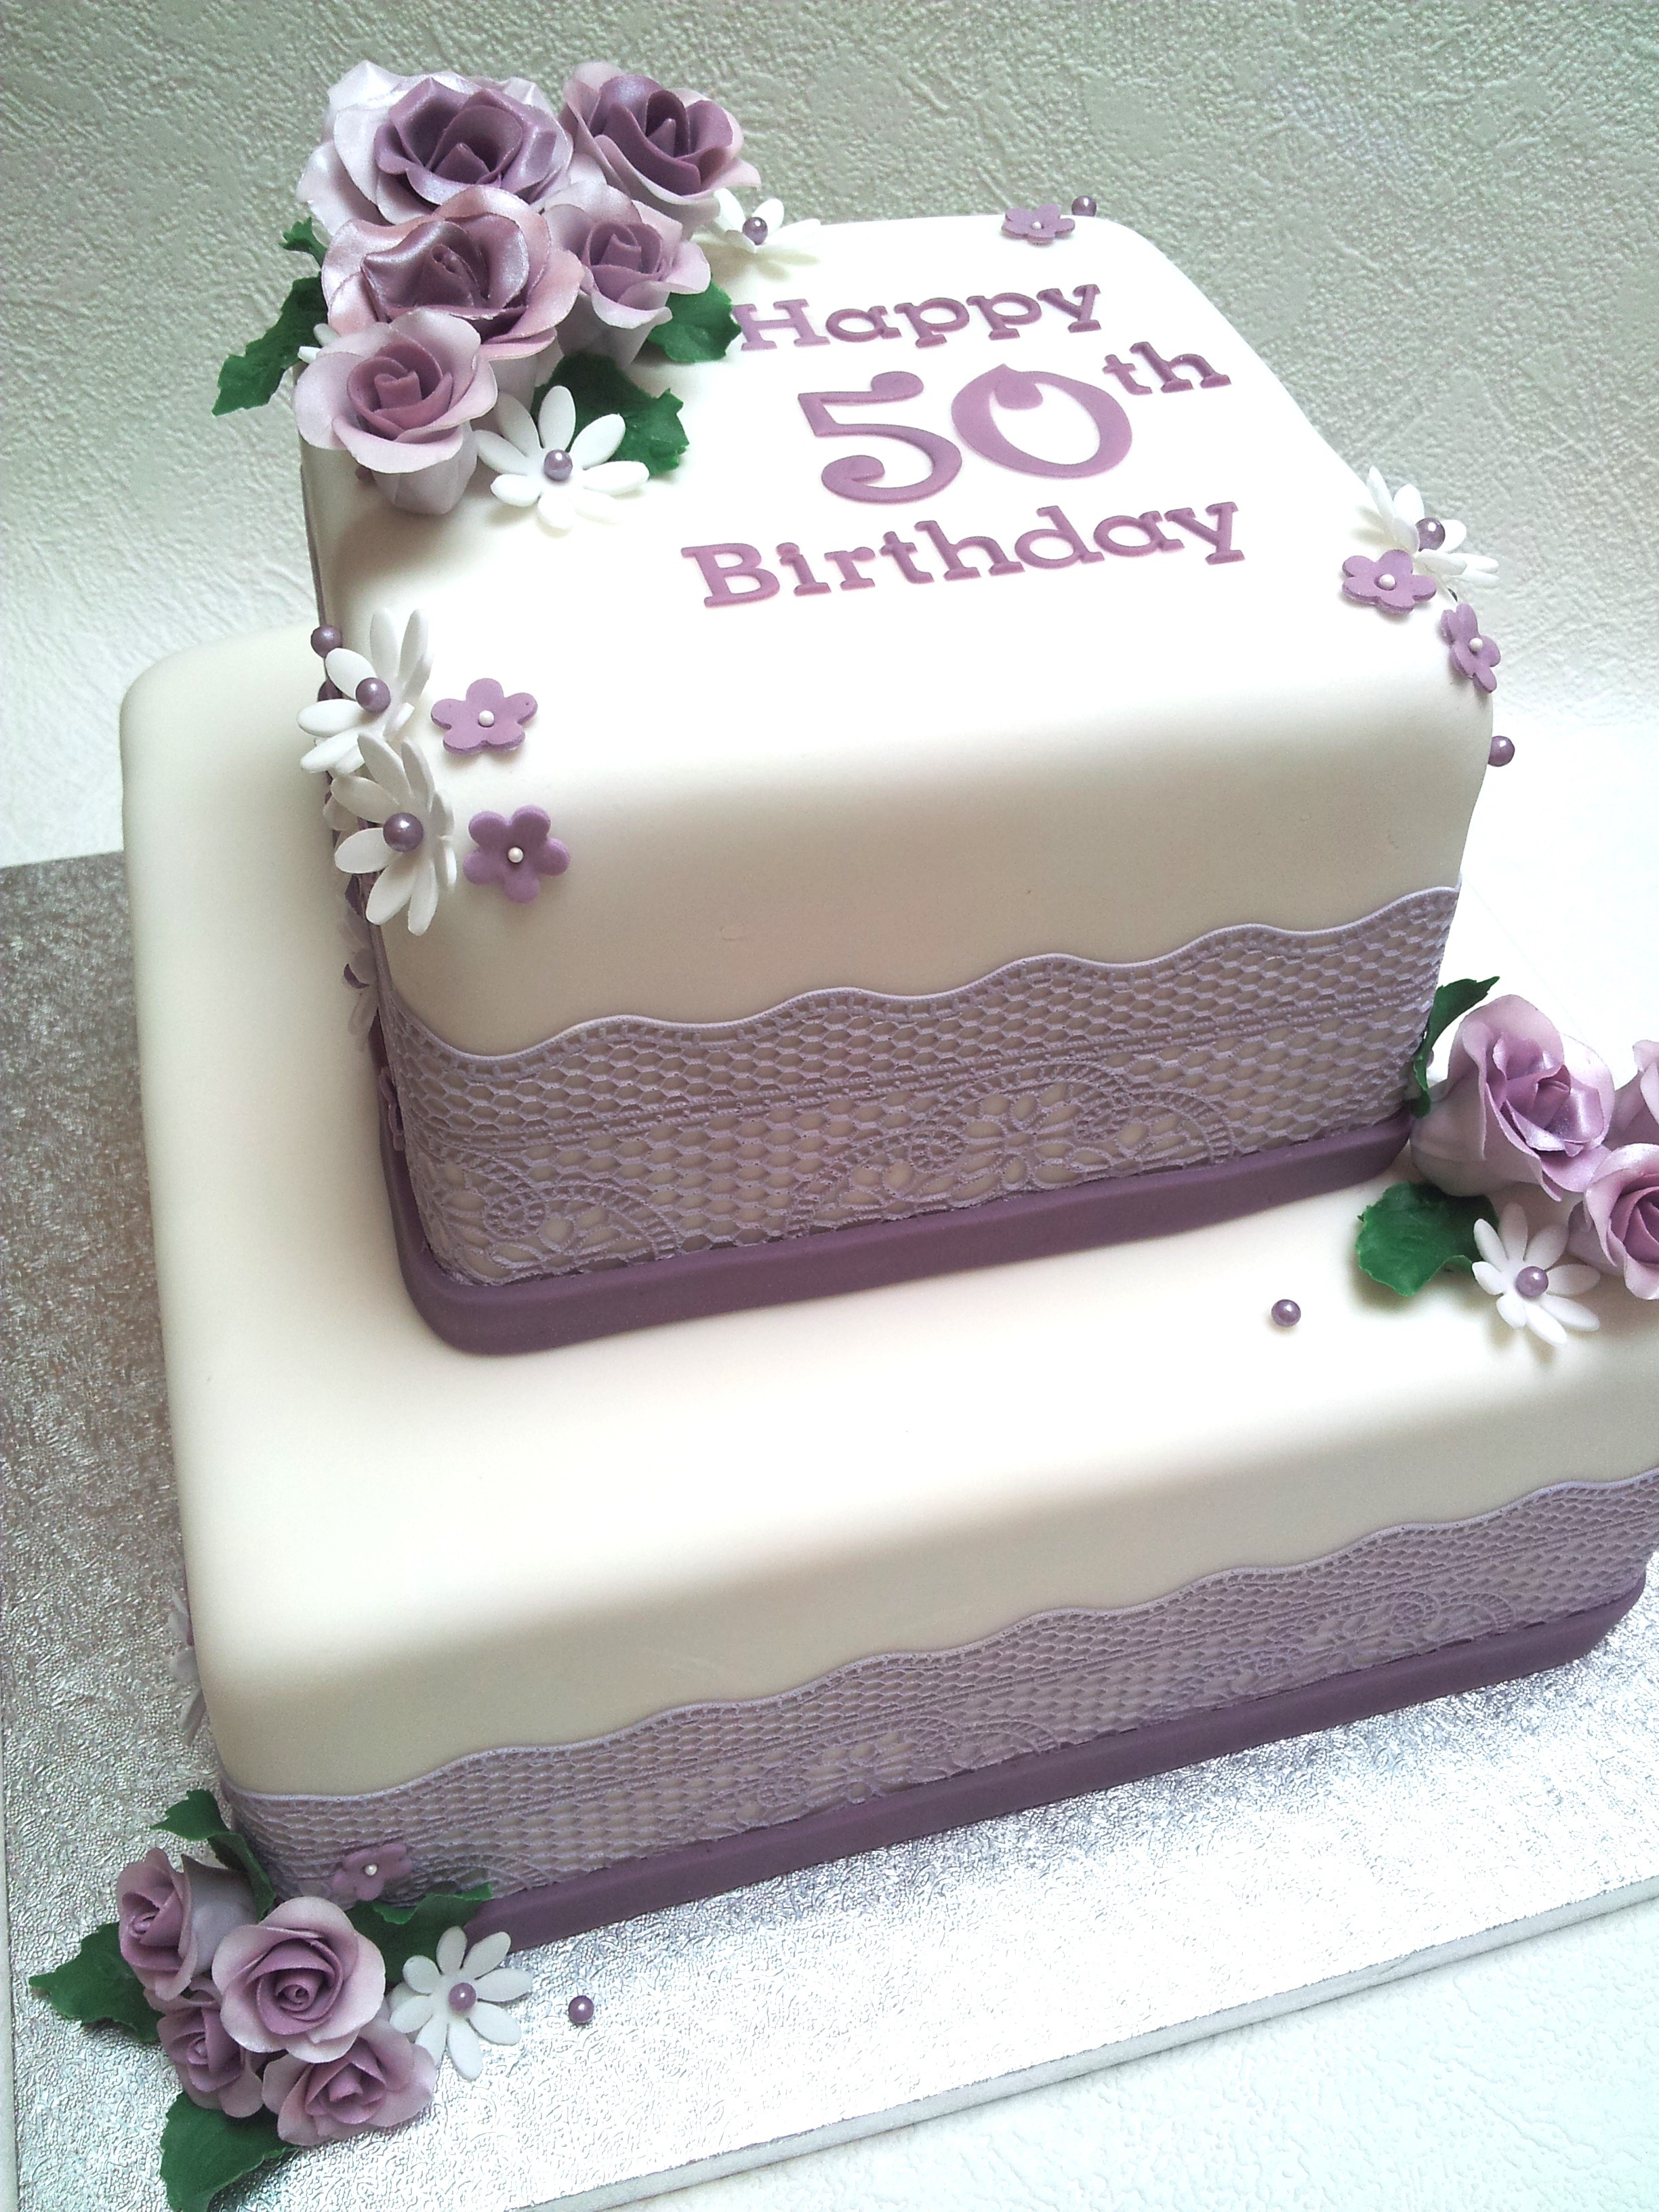 Birthday Cake Designs In Square : Sweet Tracey Cakes Purple roses 50th birthday cake lace ...